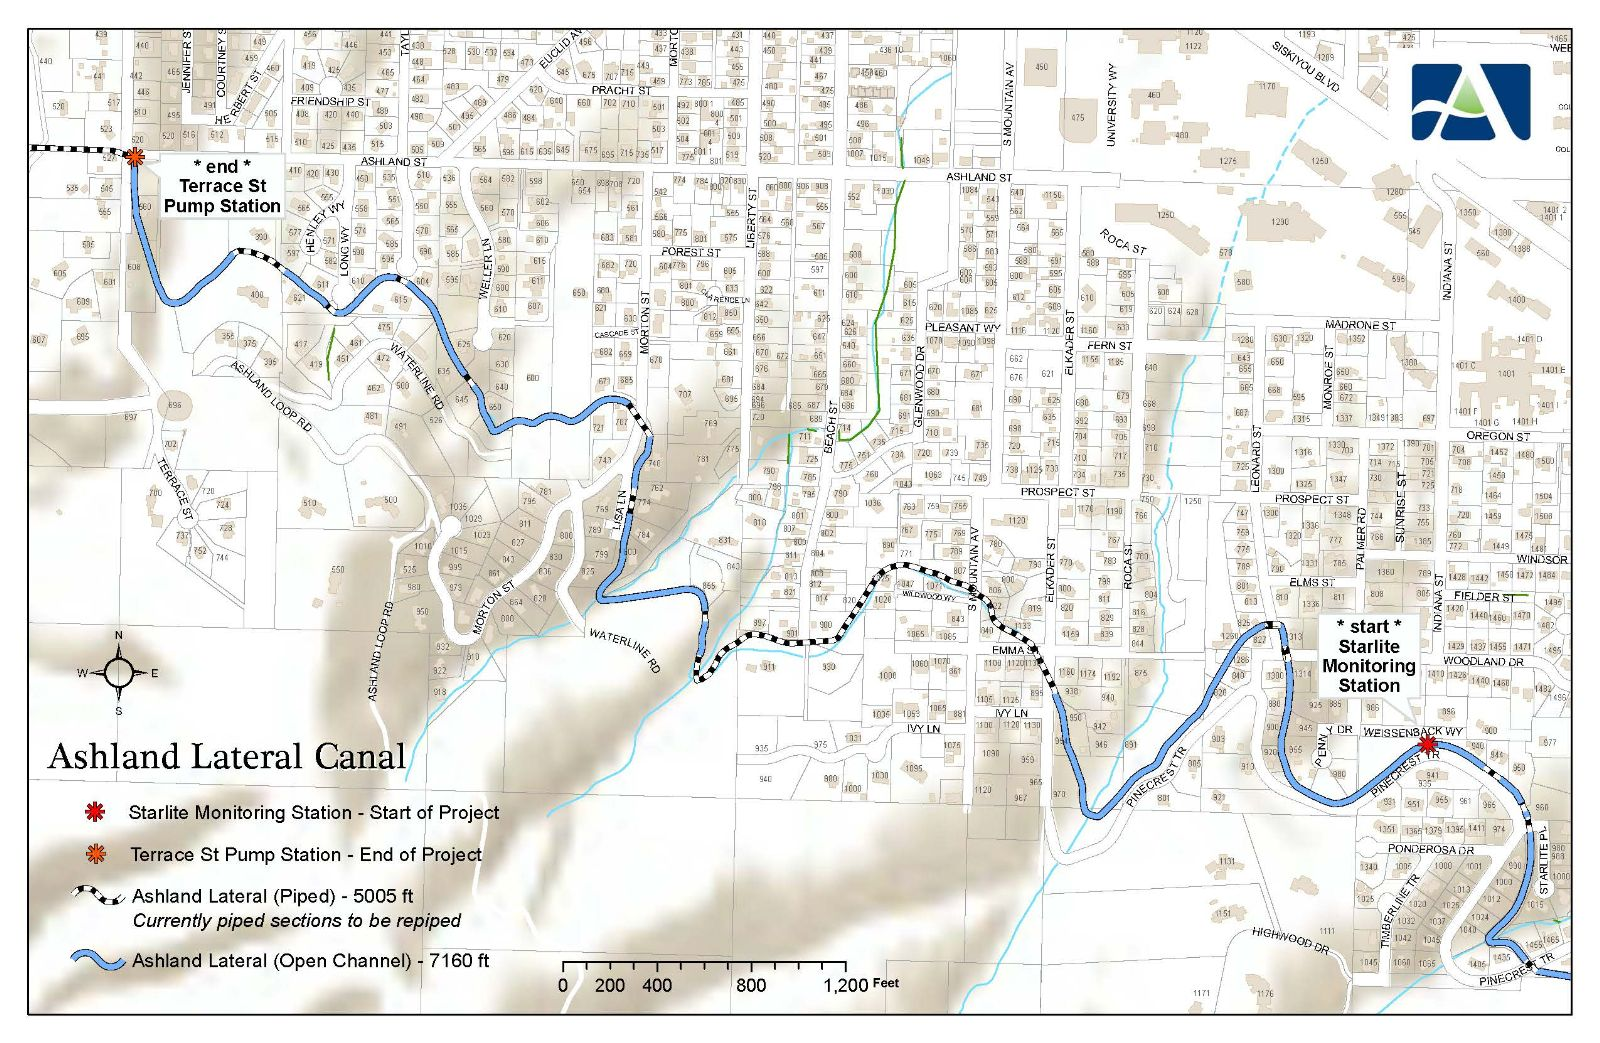 A map of the Ashland Canal showing the length that is proposed for piping and sections that are already piped. Photo taken from the city website.